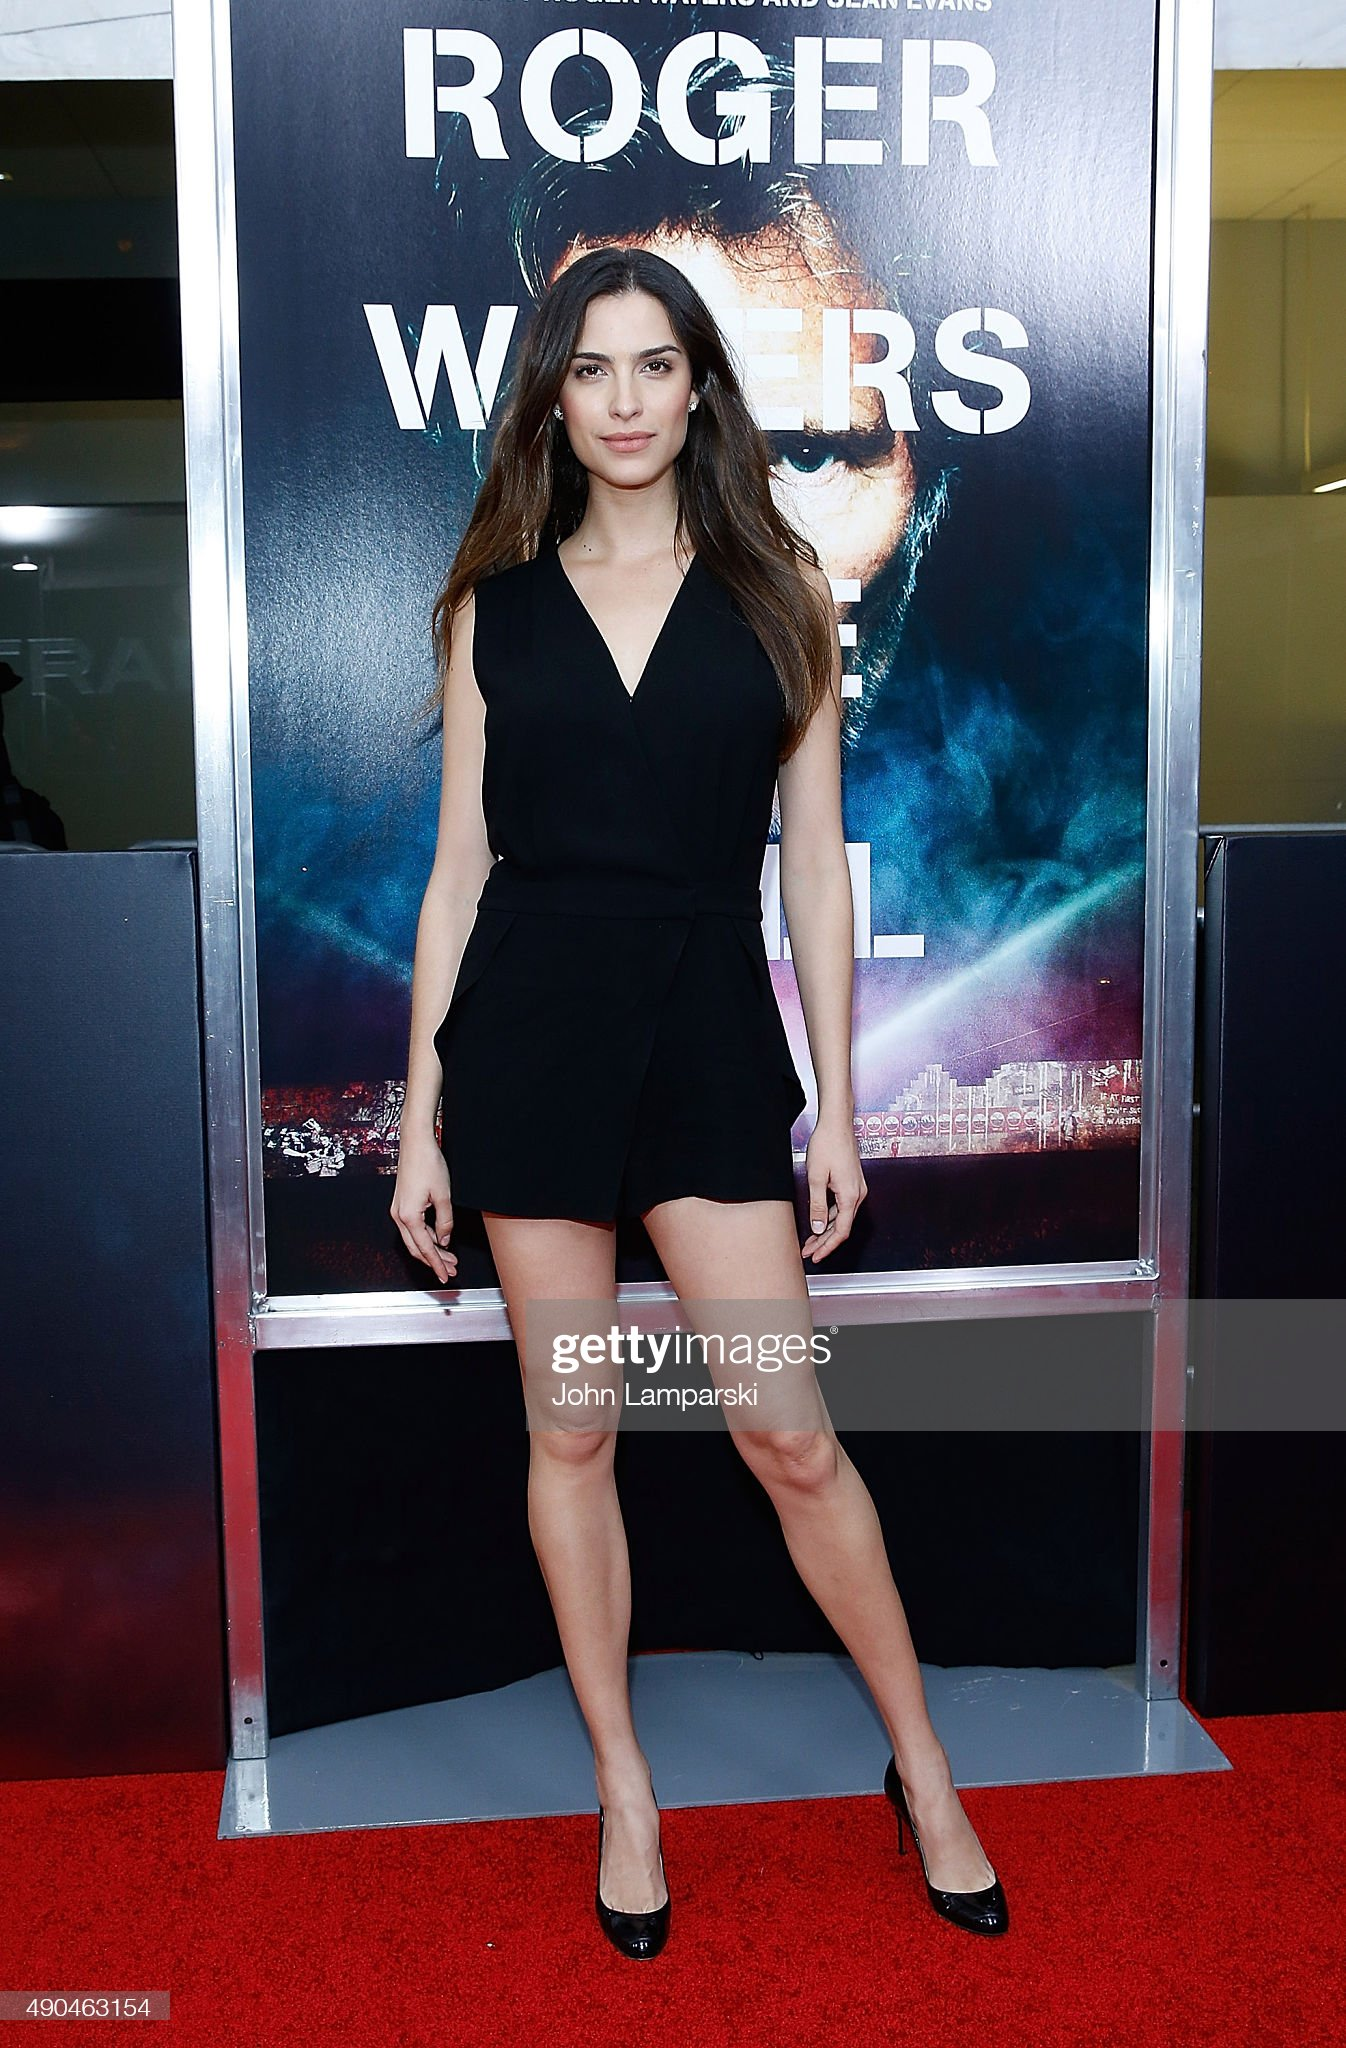 ¿Cuánto mide Natalia Beber? - Altura - Real height Natalia-beber-attends-roger-waters-the-wall-new-york-premiere-at-on-picture-id490463154?s=2048x2048